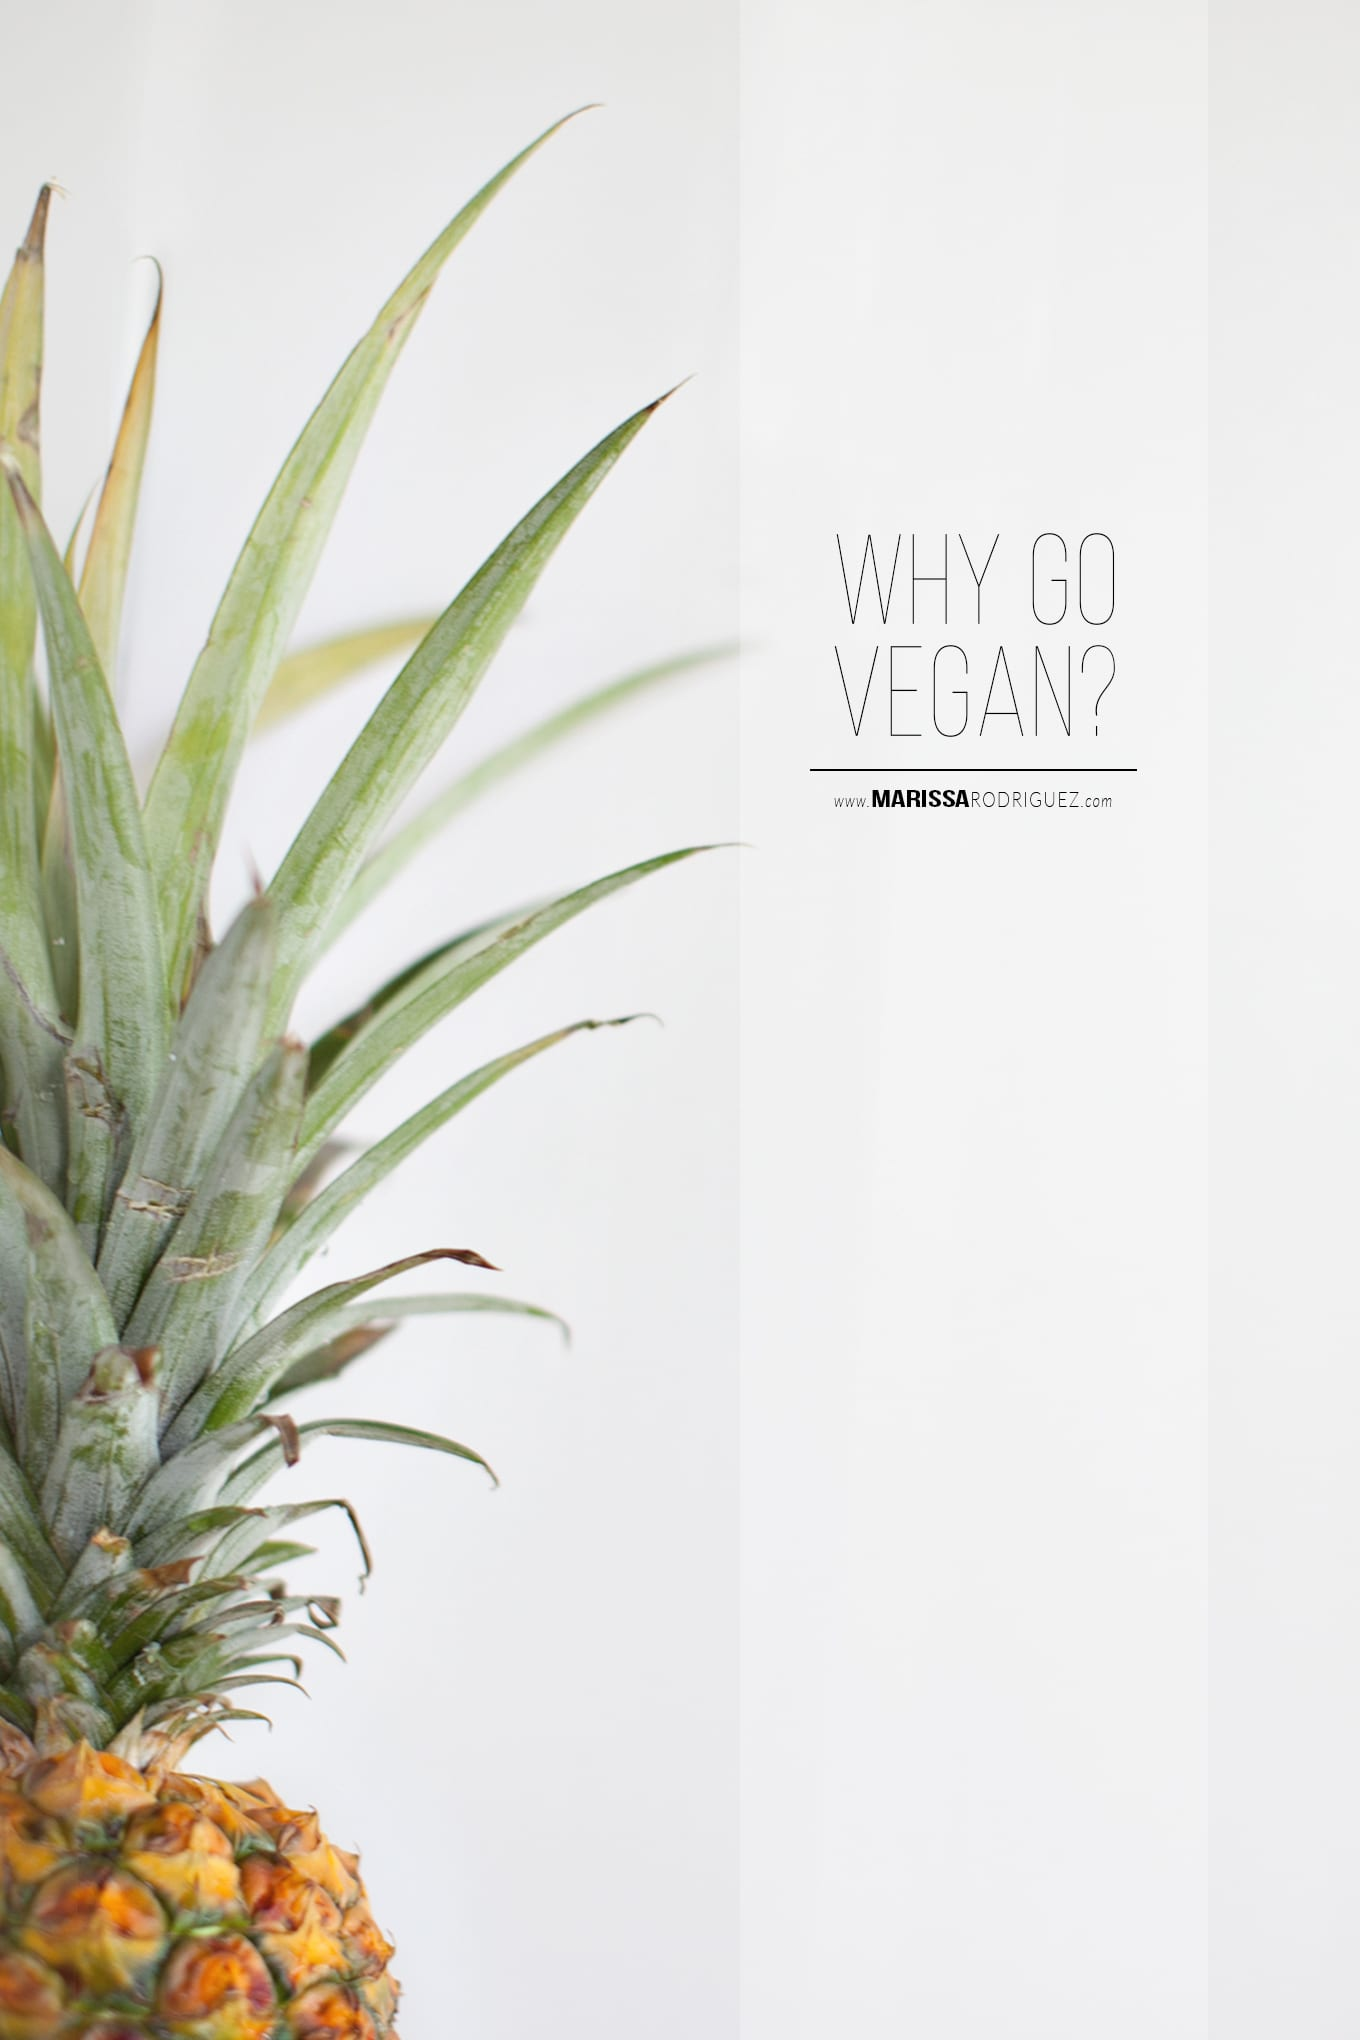 should i go vegan? reasons to go vegan